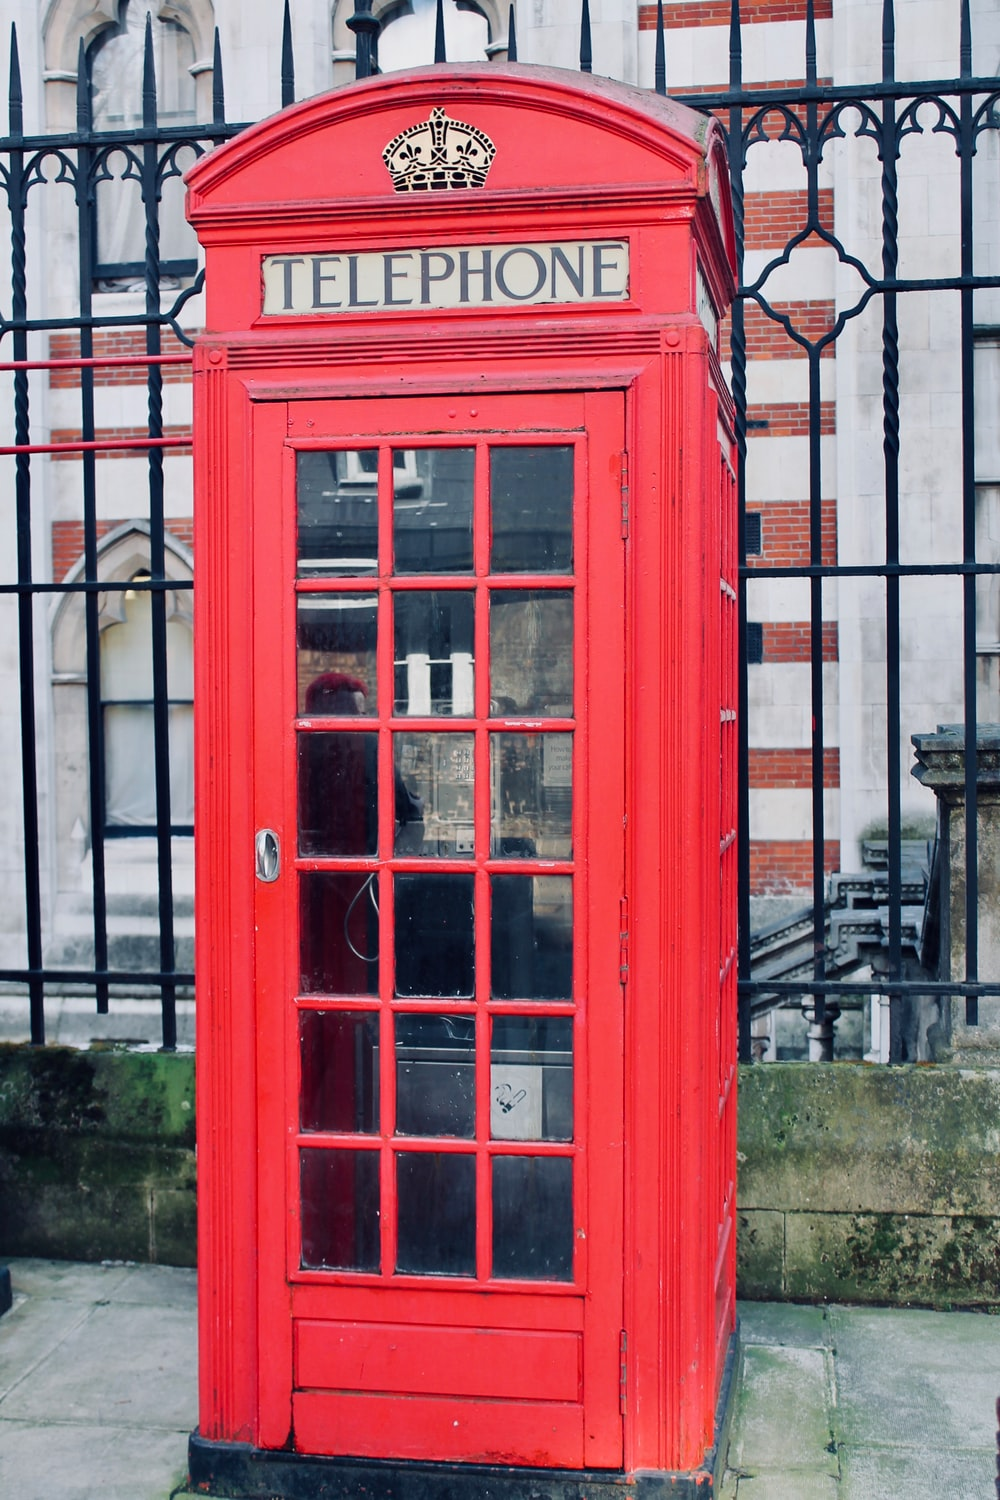 red telephone booth near building during daytime